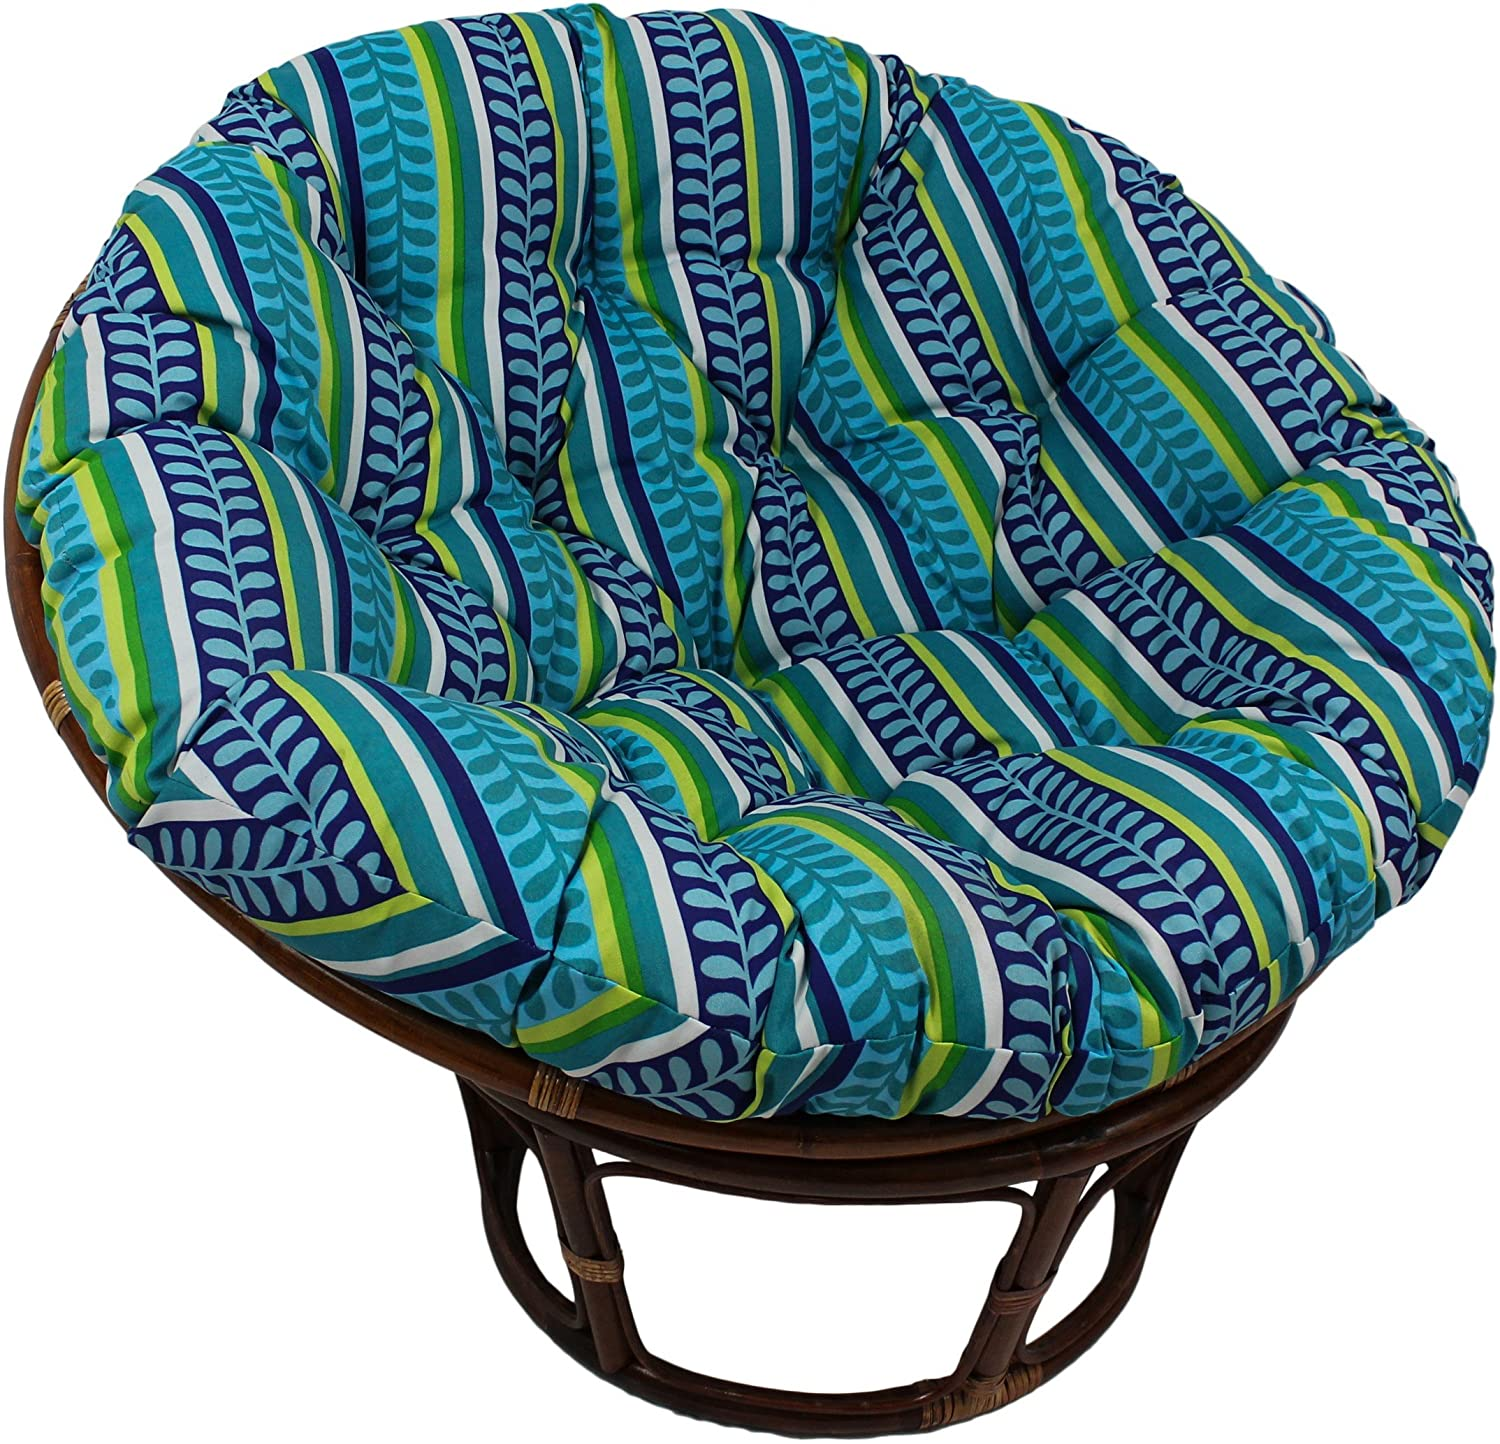 Blazing Needles Patterned Outdoor Spun Polyester Papasan Cushion, 44 , Eastbay Onyx